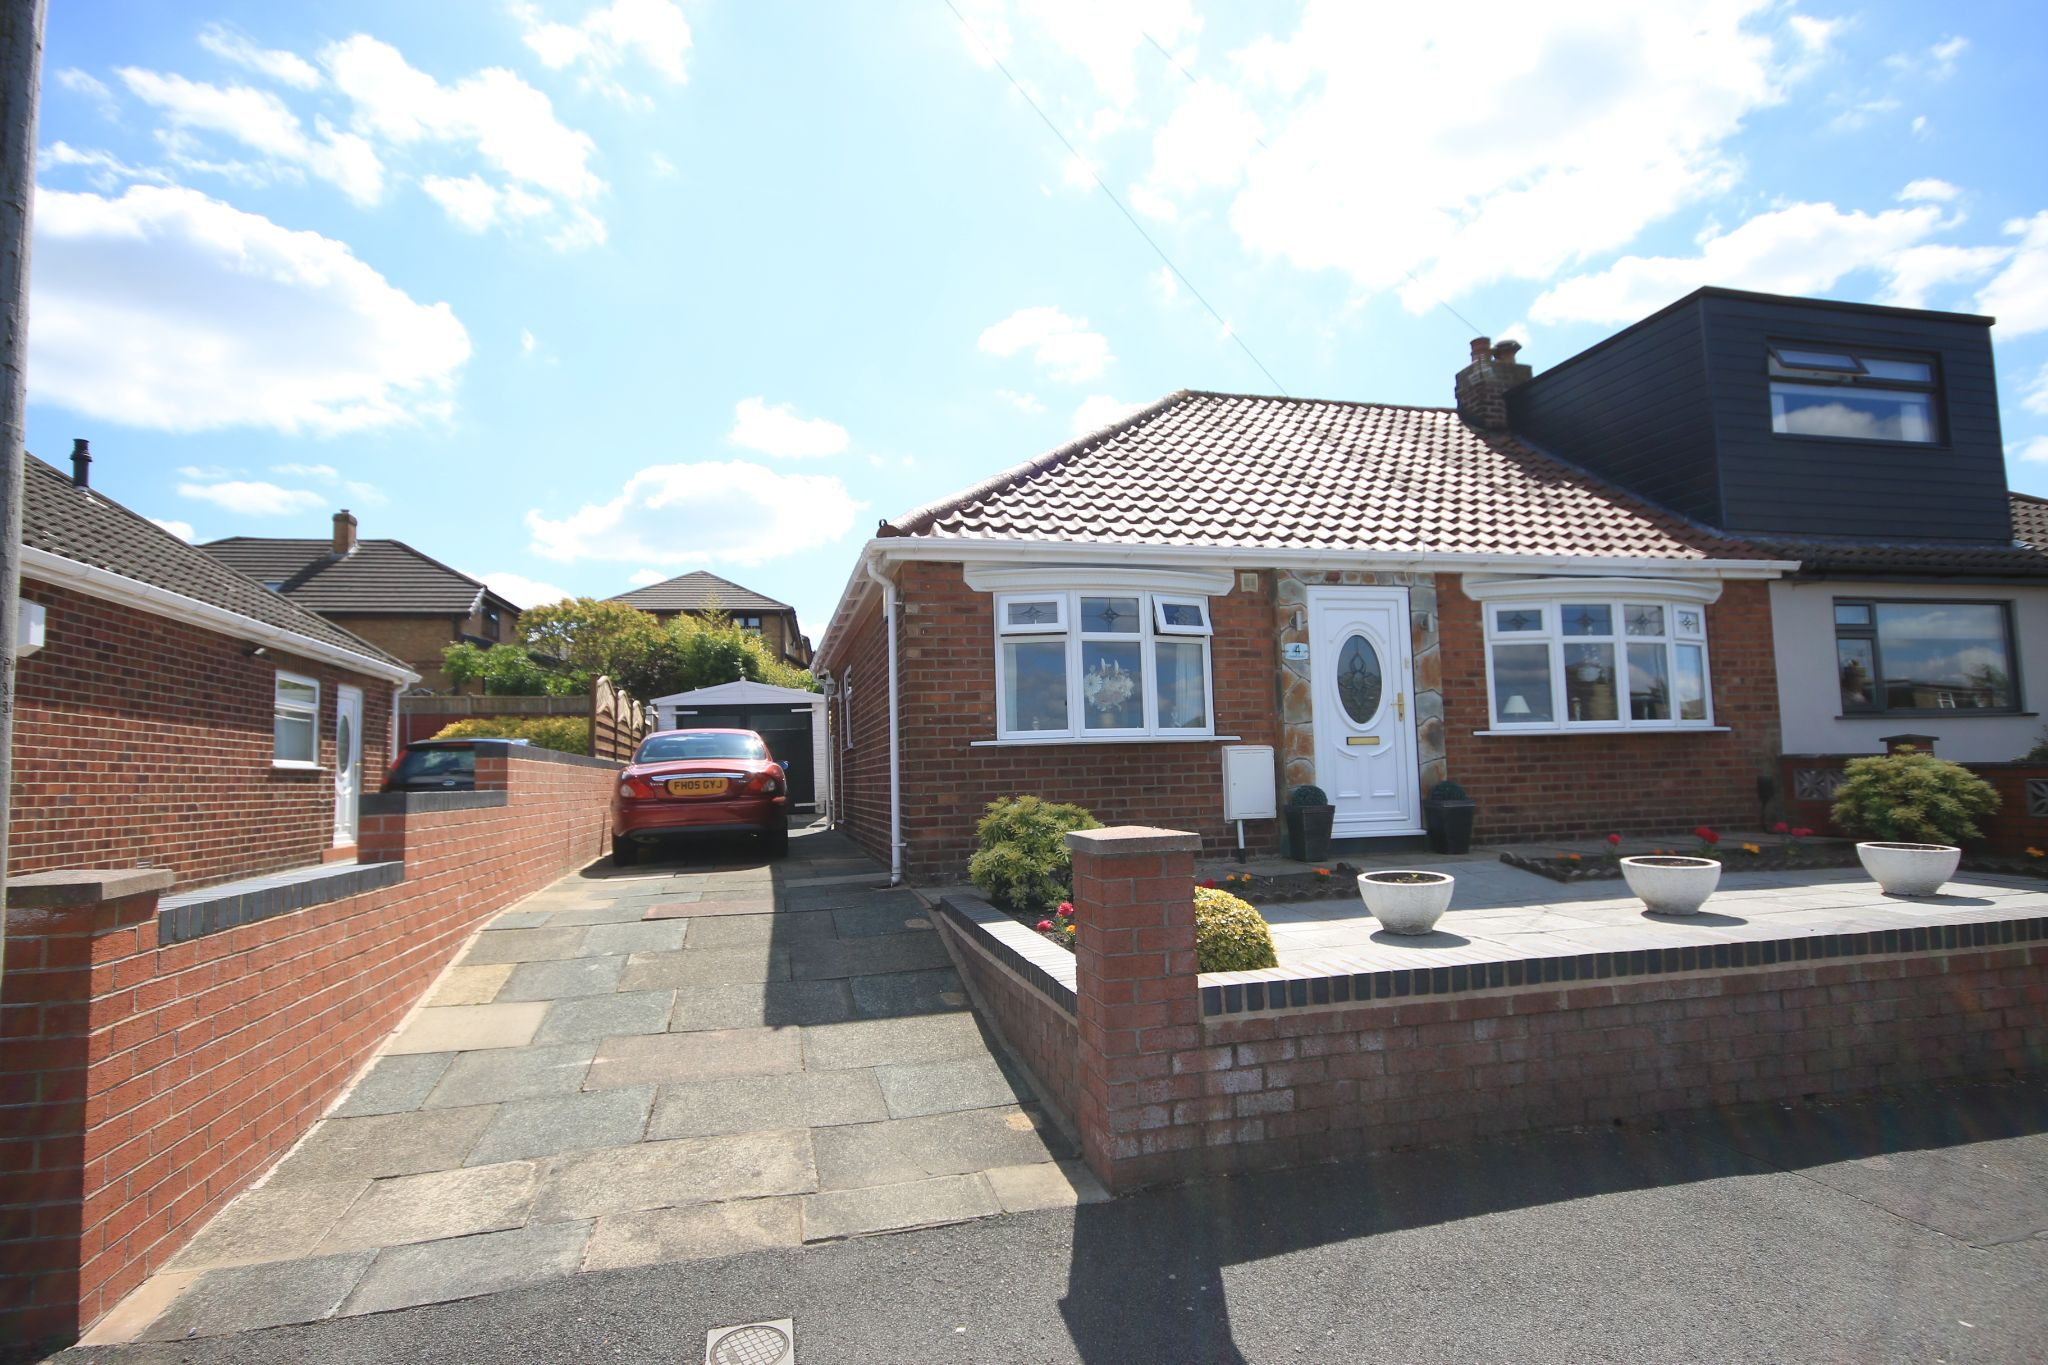 2 Bedroom Semi-detached Bungalow For Sale - Photograph 1